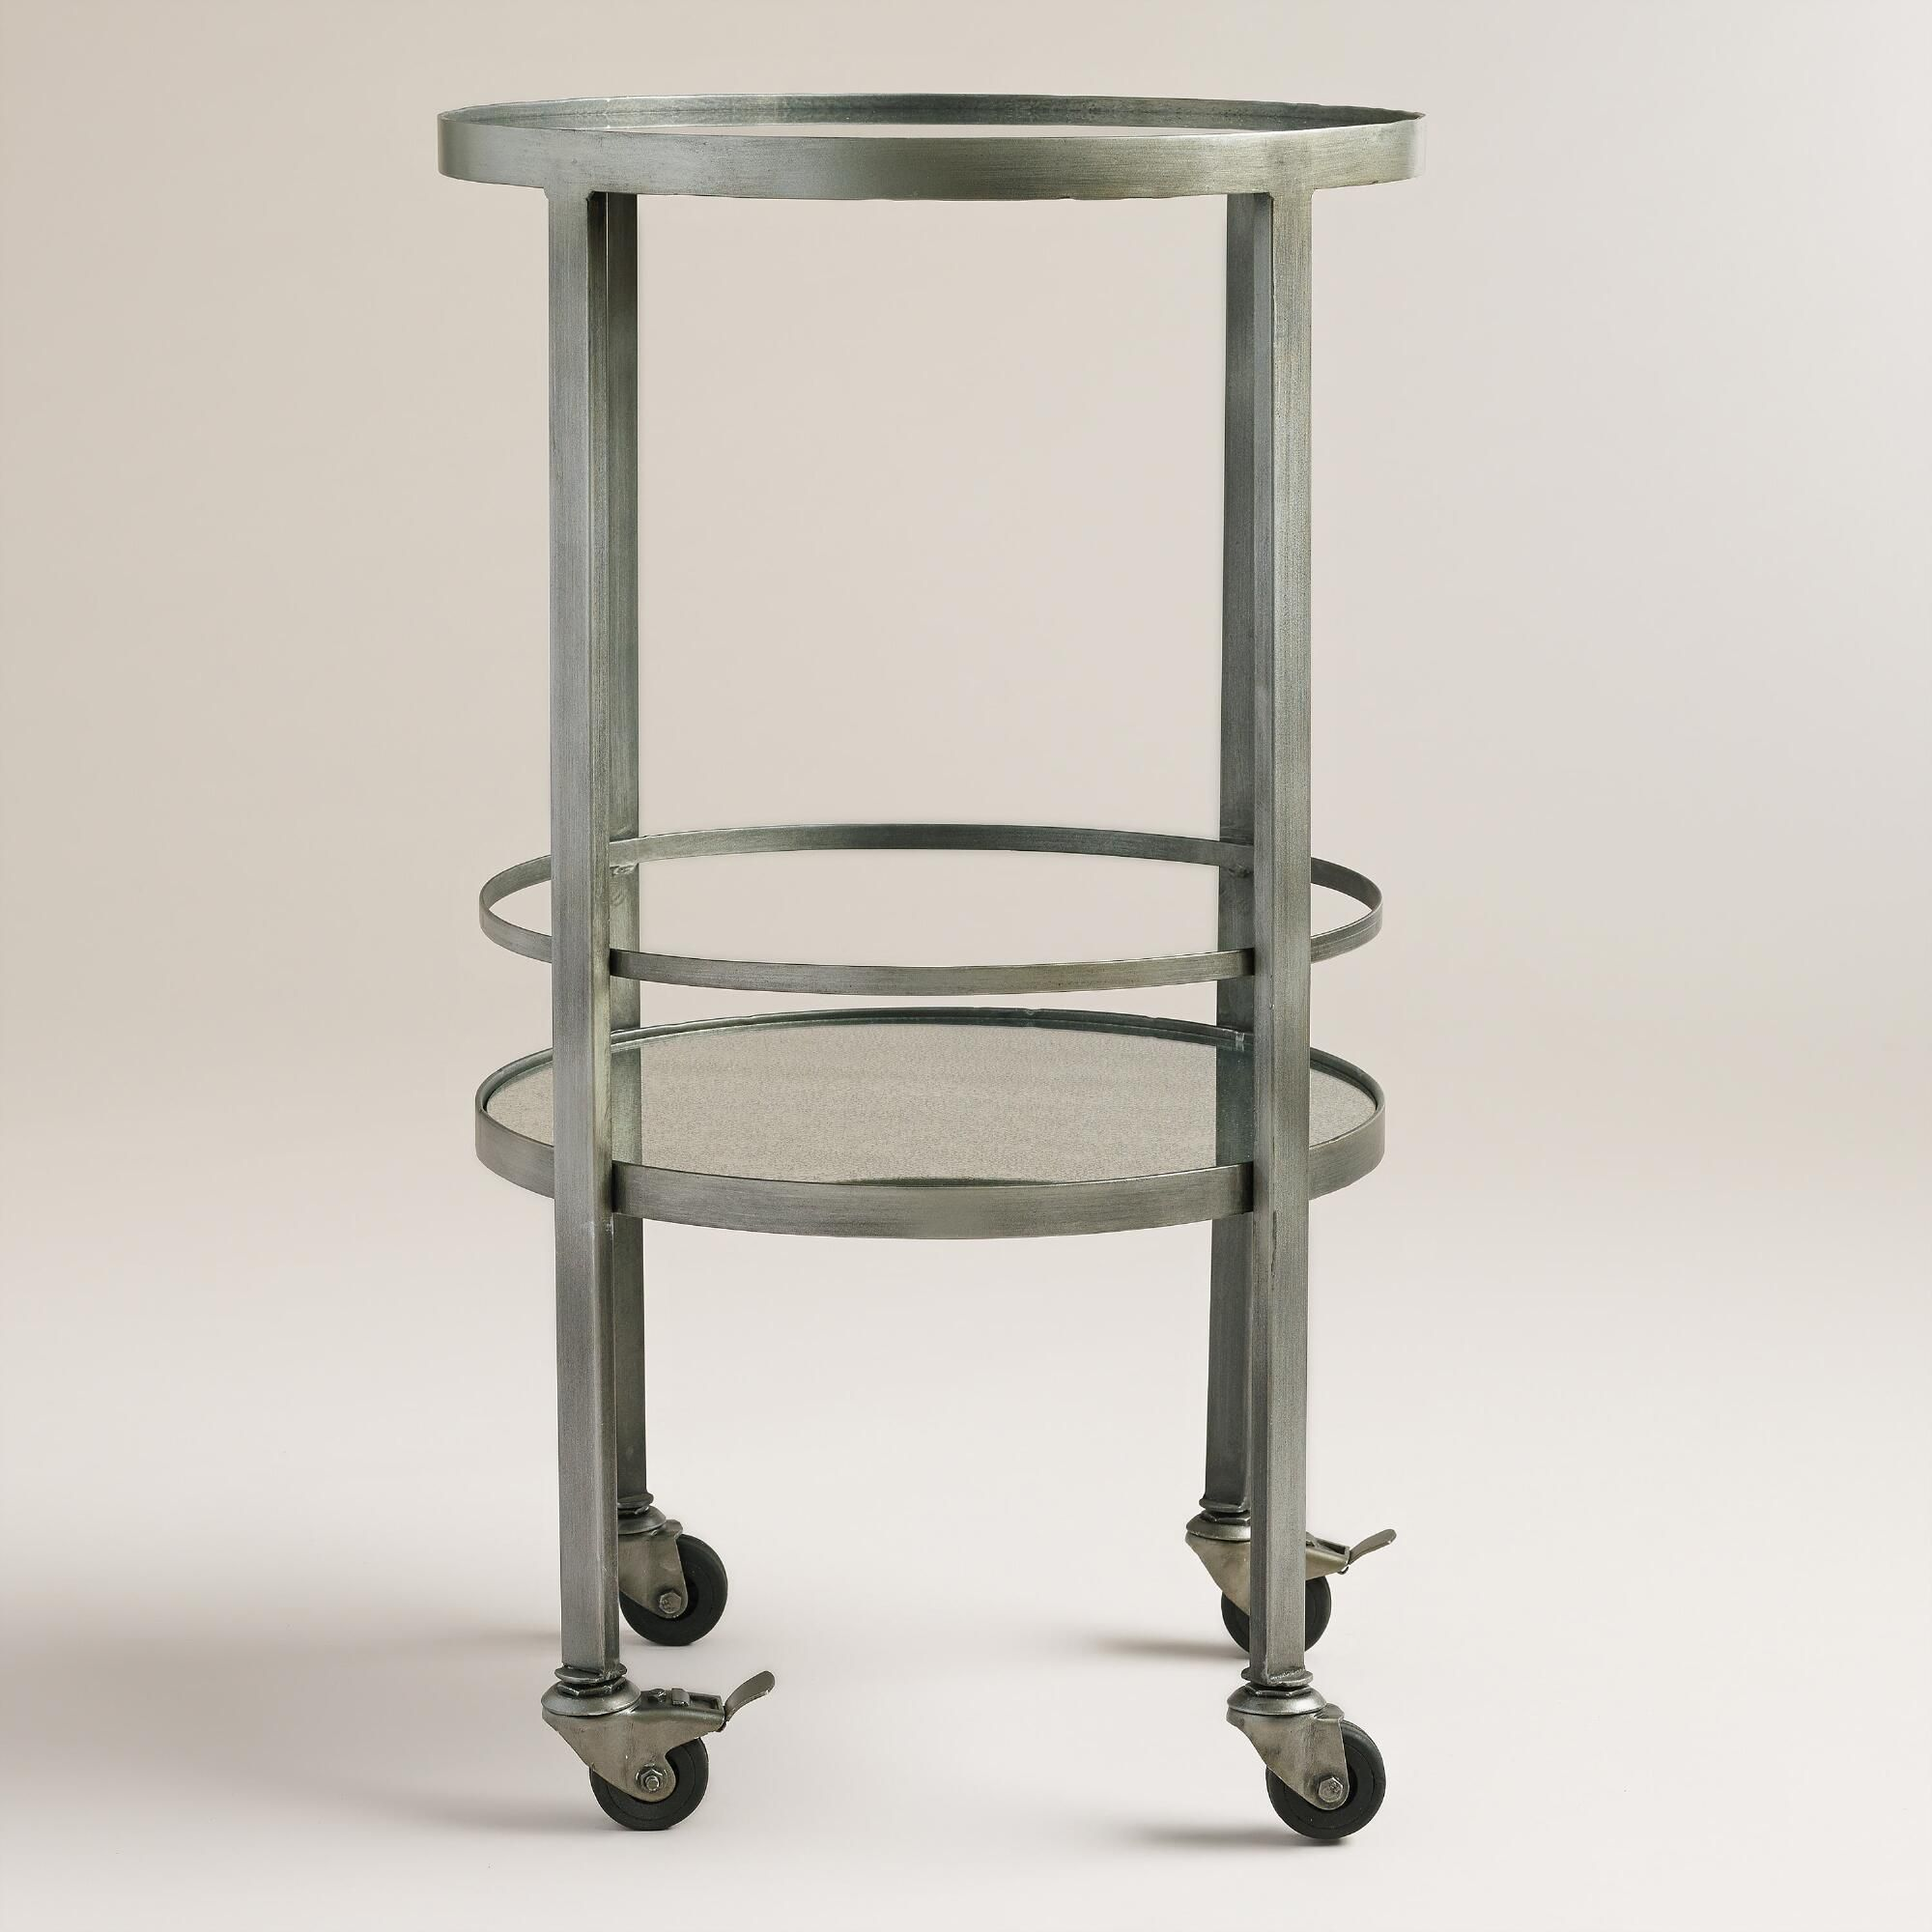 Serve Drinks In Style With Our Portable Bar Cart, Featuring A Silver  Finish, Mirror Shelves And Attached Wheels. Set Up Your Home Bar In The  Corner Or Move ...